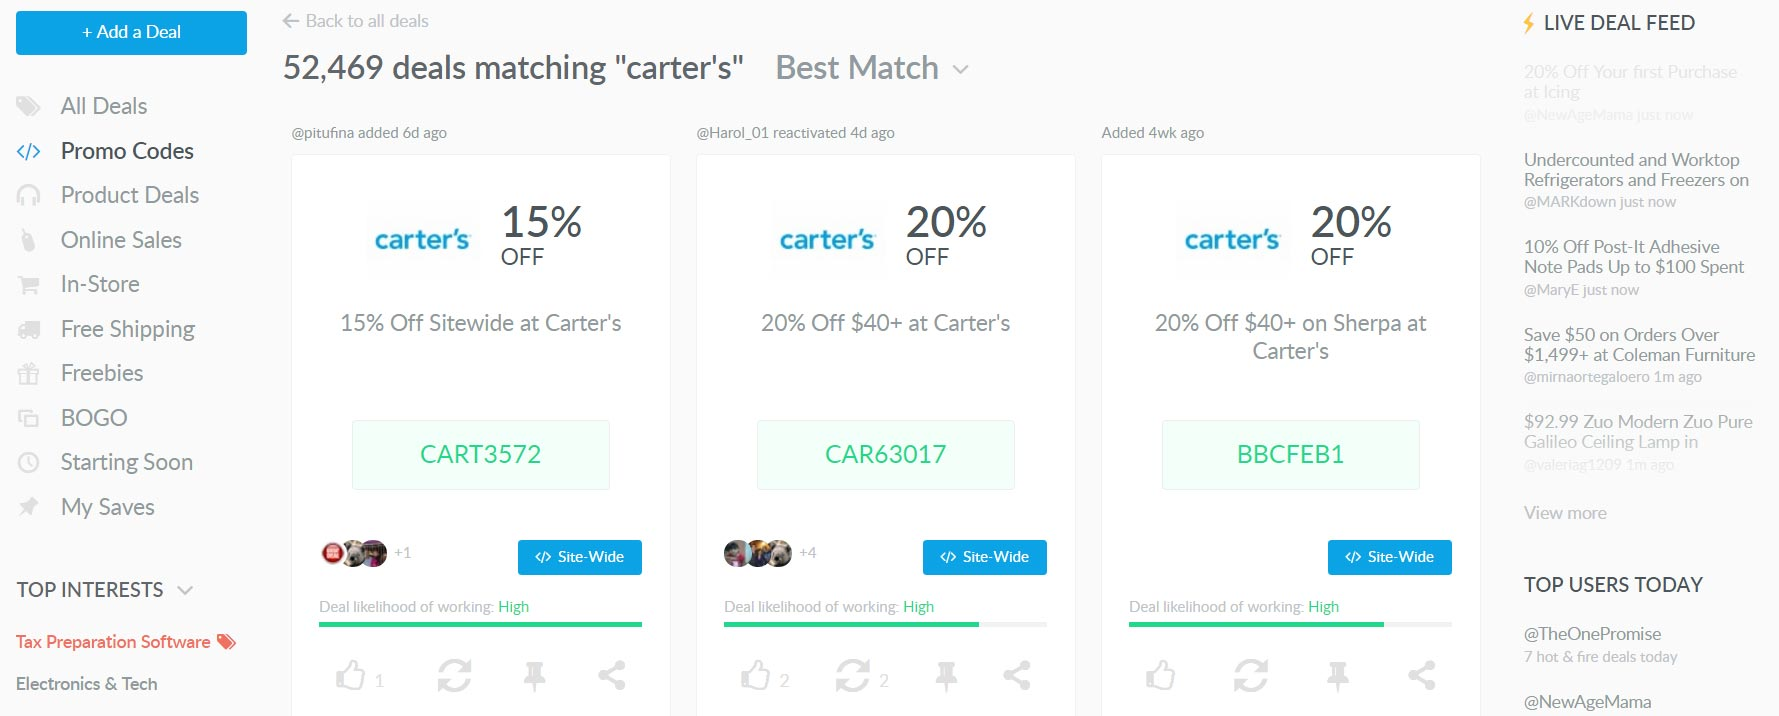 Carters promo code example on Dealspotr